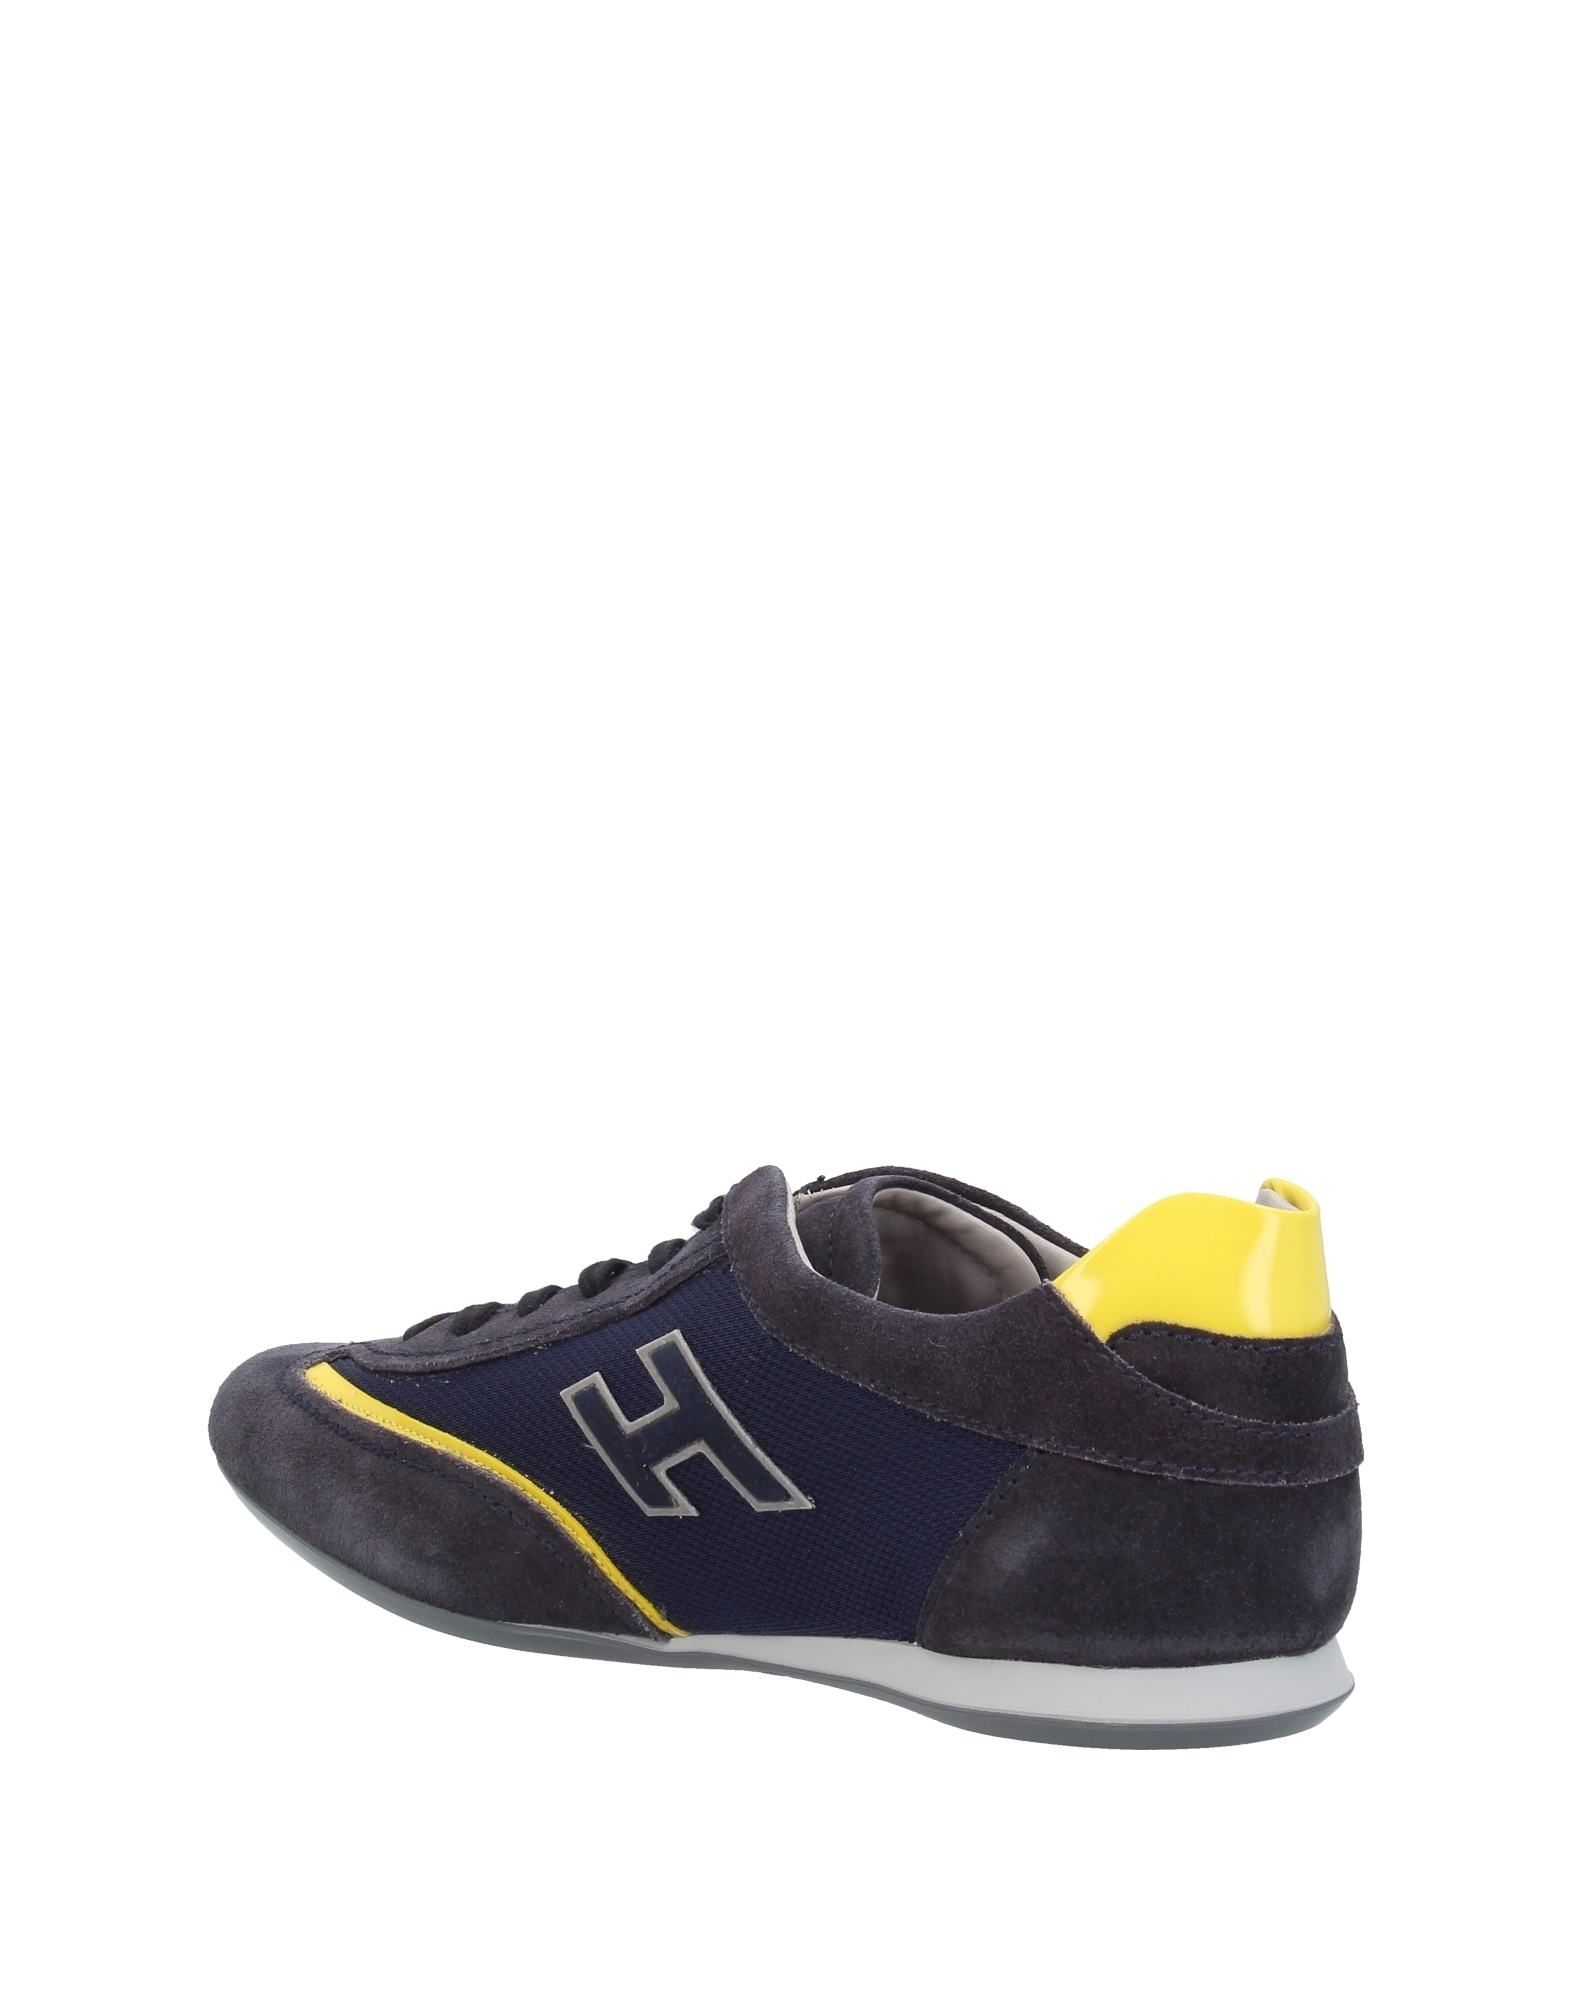 Hogan Hogan Hogan Sneakers - Men Hogan Sneakers online on  United Kingdom - 11396998TK 32e310